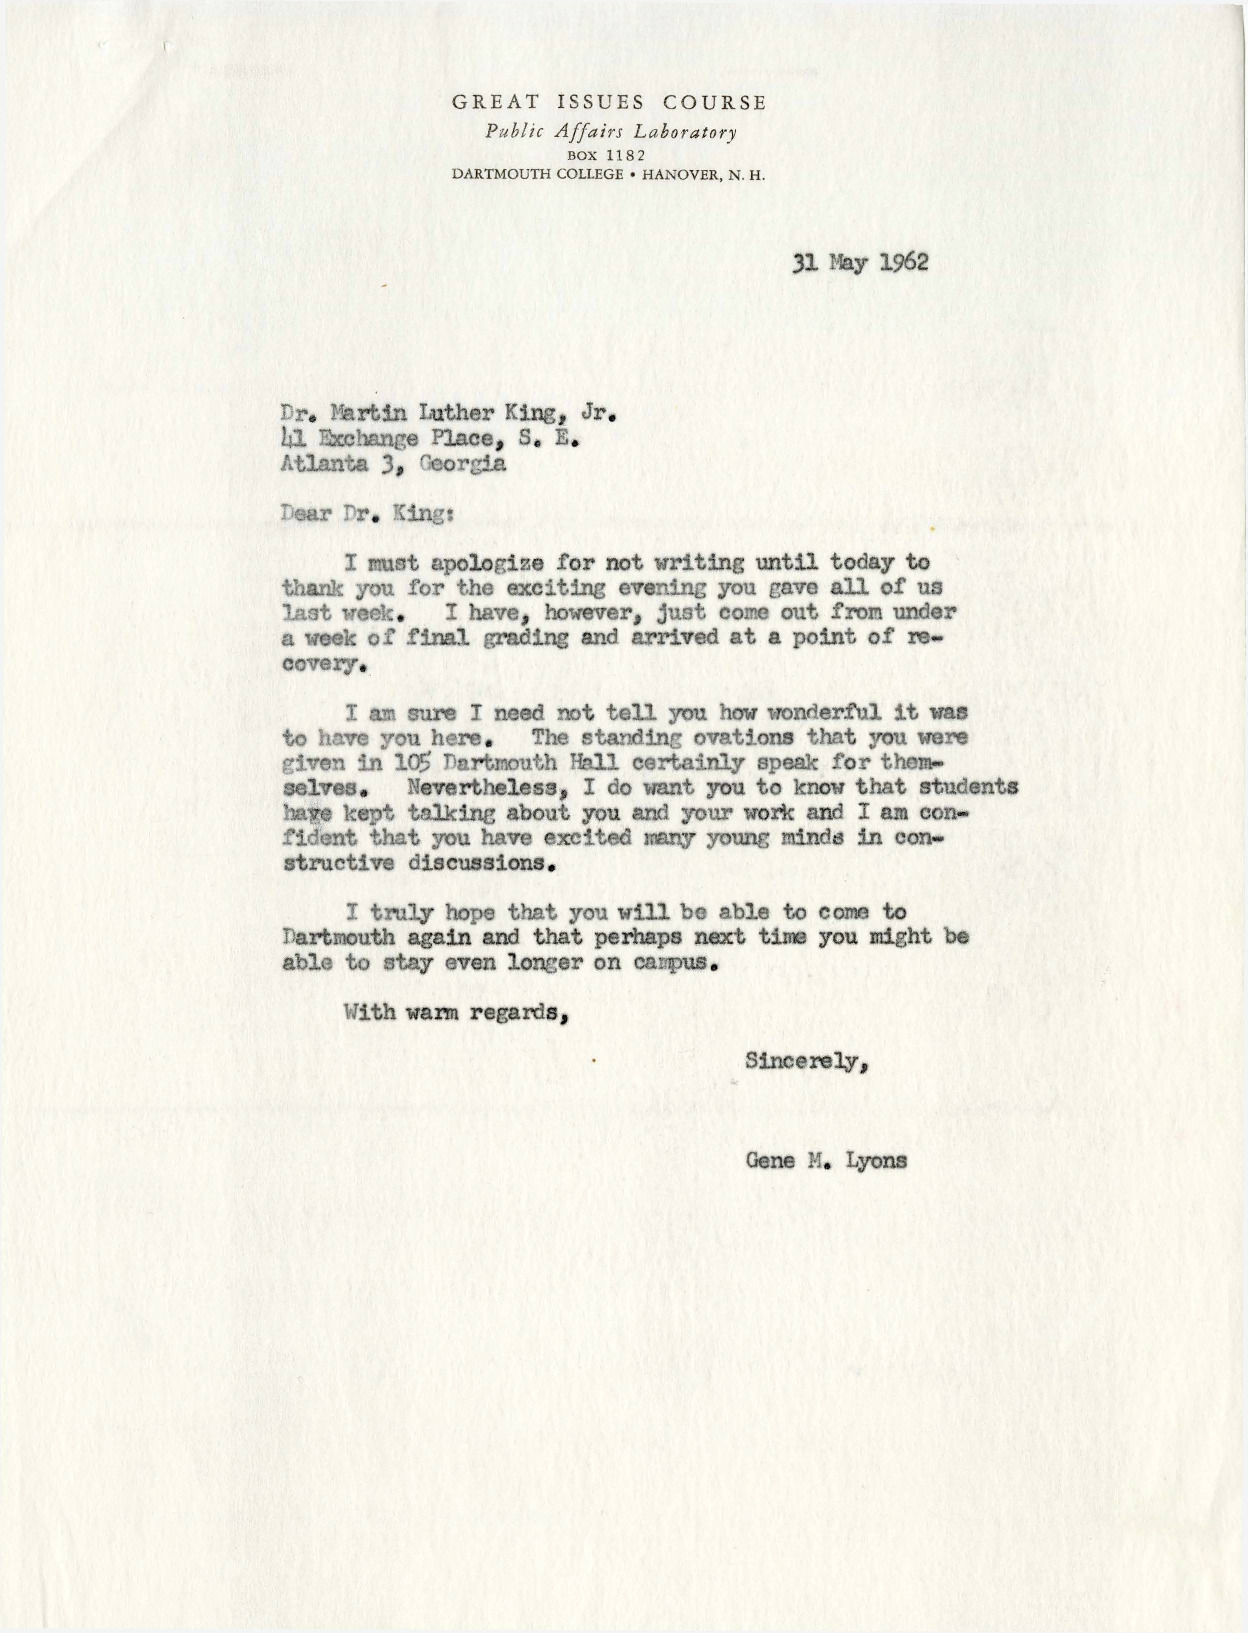 Professor Gene Lyons wrote this letter to Dr. Martin Luther King, Jr. eight days after the Civil Rights leader visited Dartmouth to deliver an address on the state of the Civil Rights Movement. Lyons apologizes for his delay in sending a letter amid the busy final grading period, and wholeheartedly thanks Dr. King for his visit and empowering words. Lyons concludes by expressing his hope that Dr. King will return and stay for a longer period of time at Dartmouth.